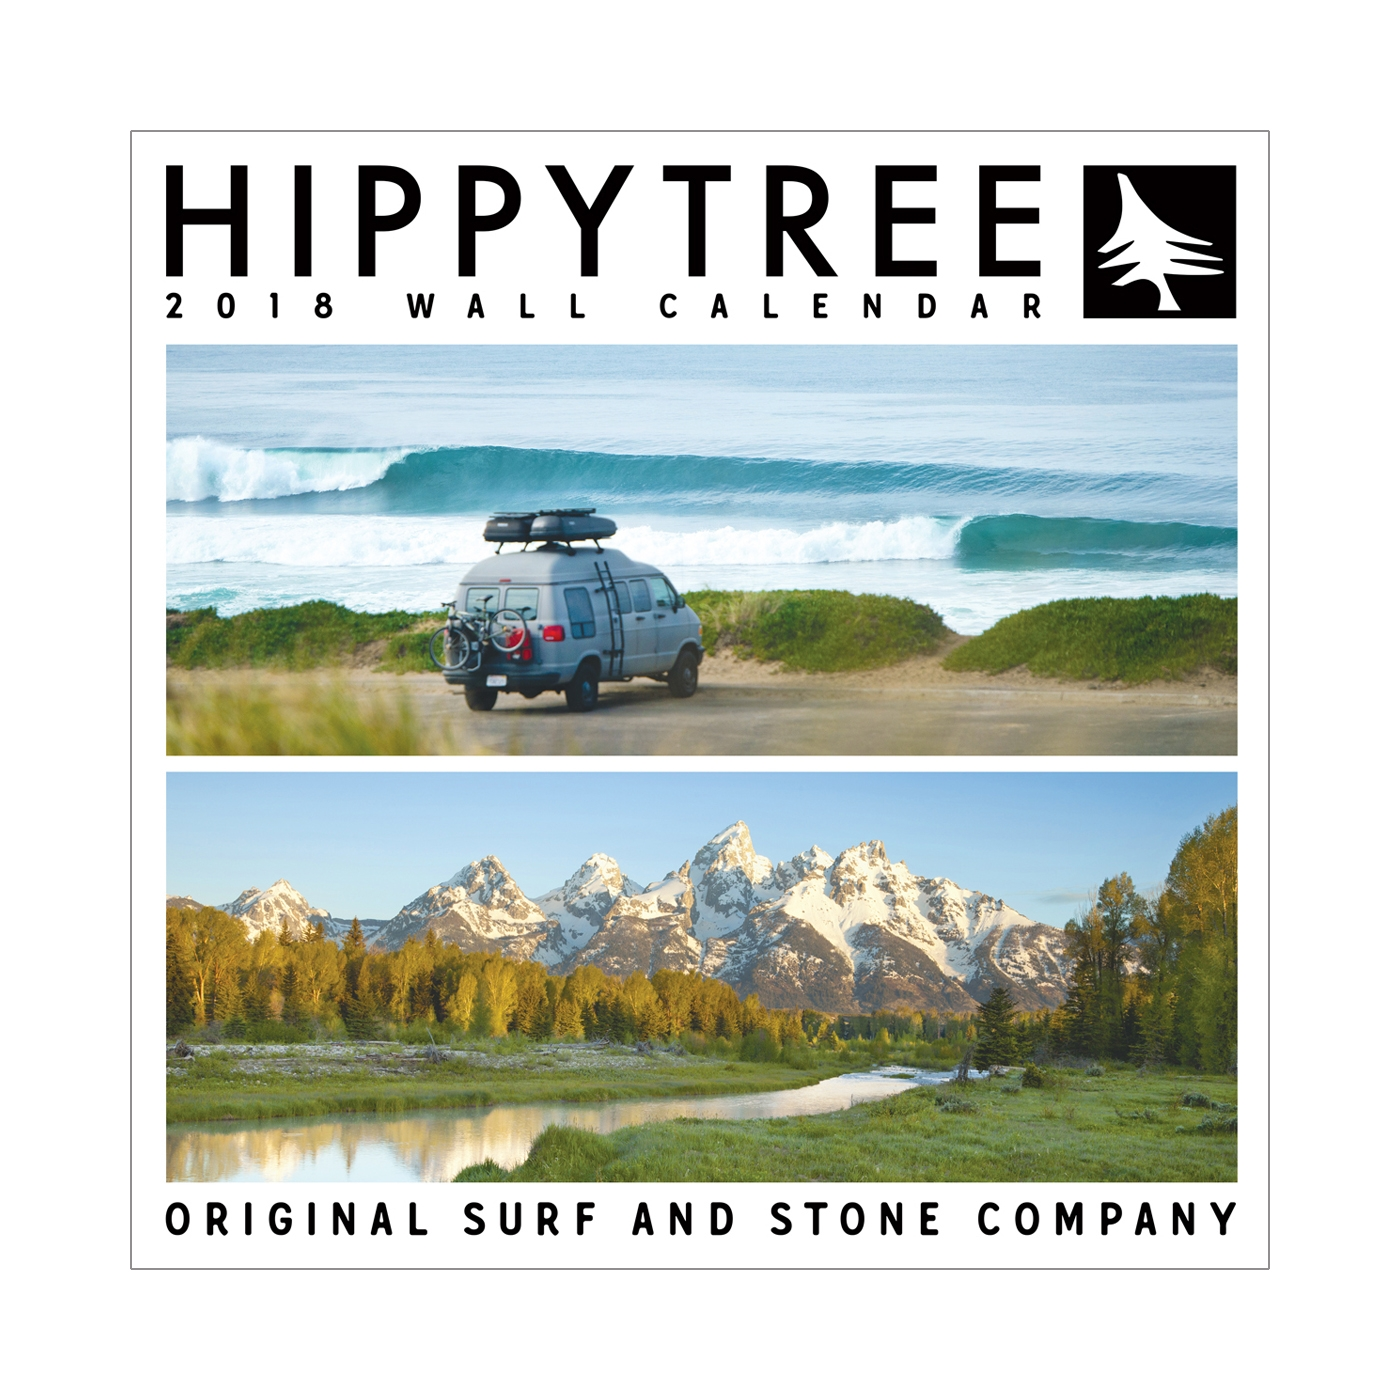 2018 Wall Calendar Assorted   HippyTree 16ac63a6a471